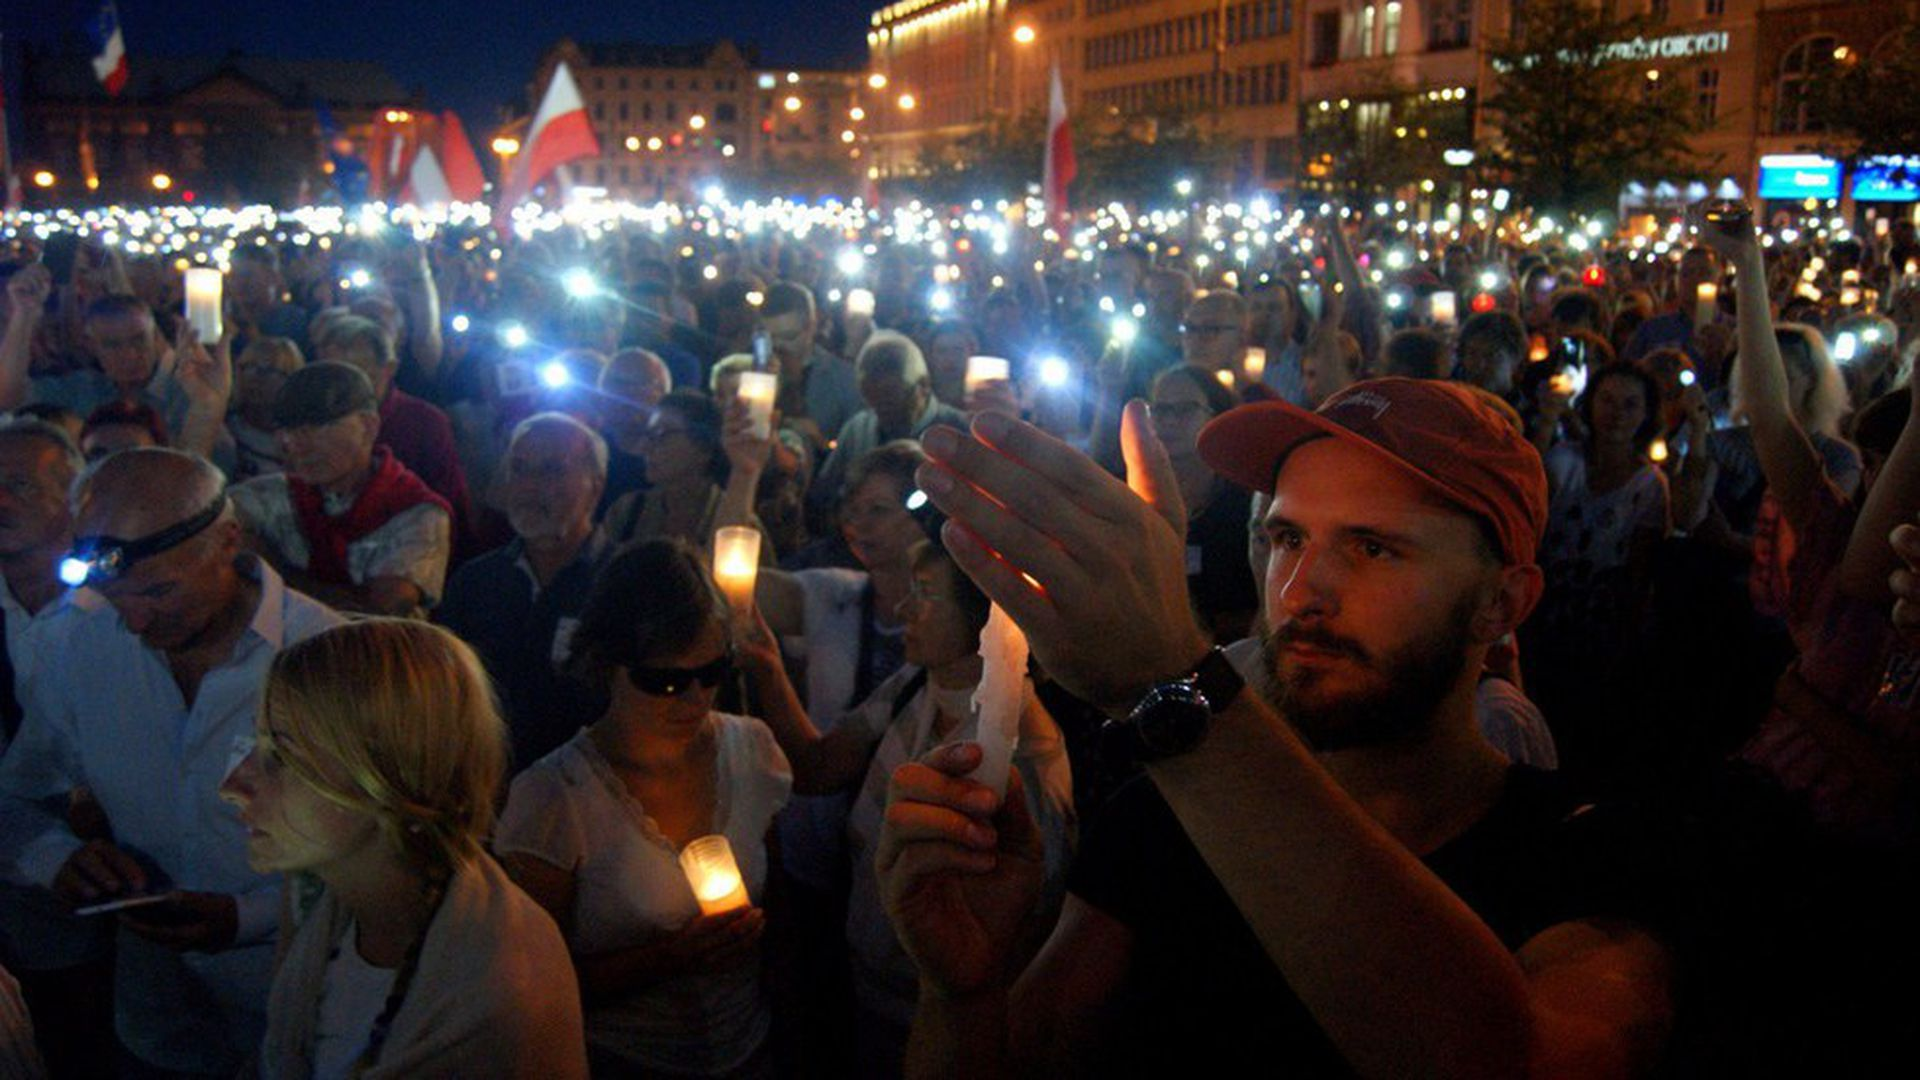 Protests against Poland's strike on independent judges - Axios